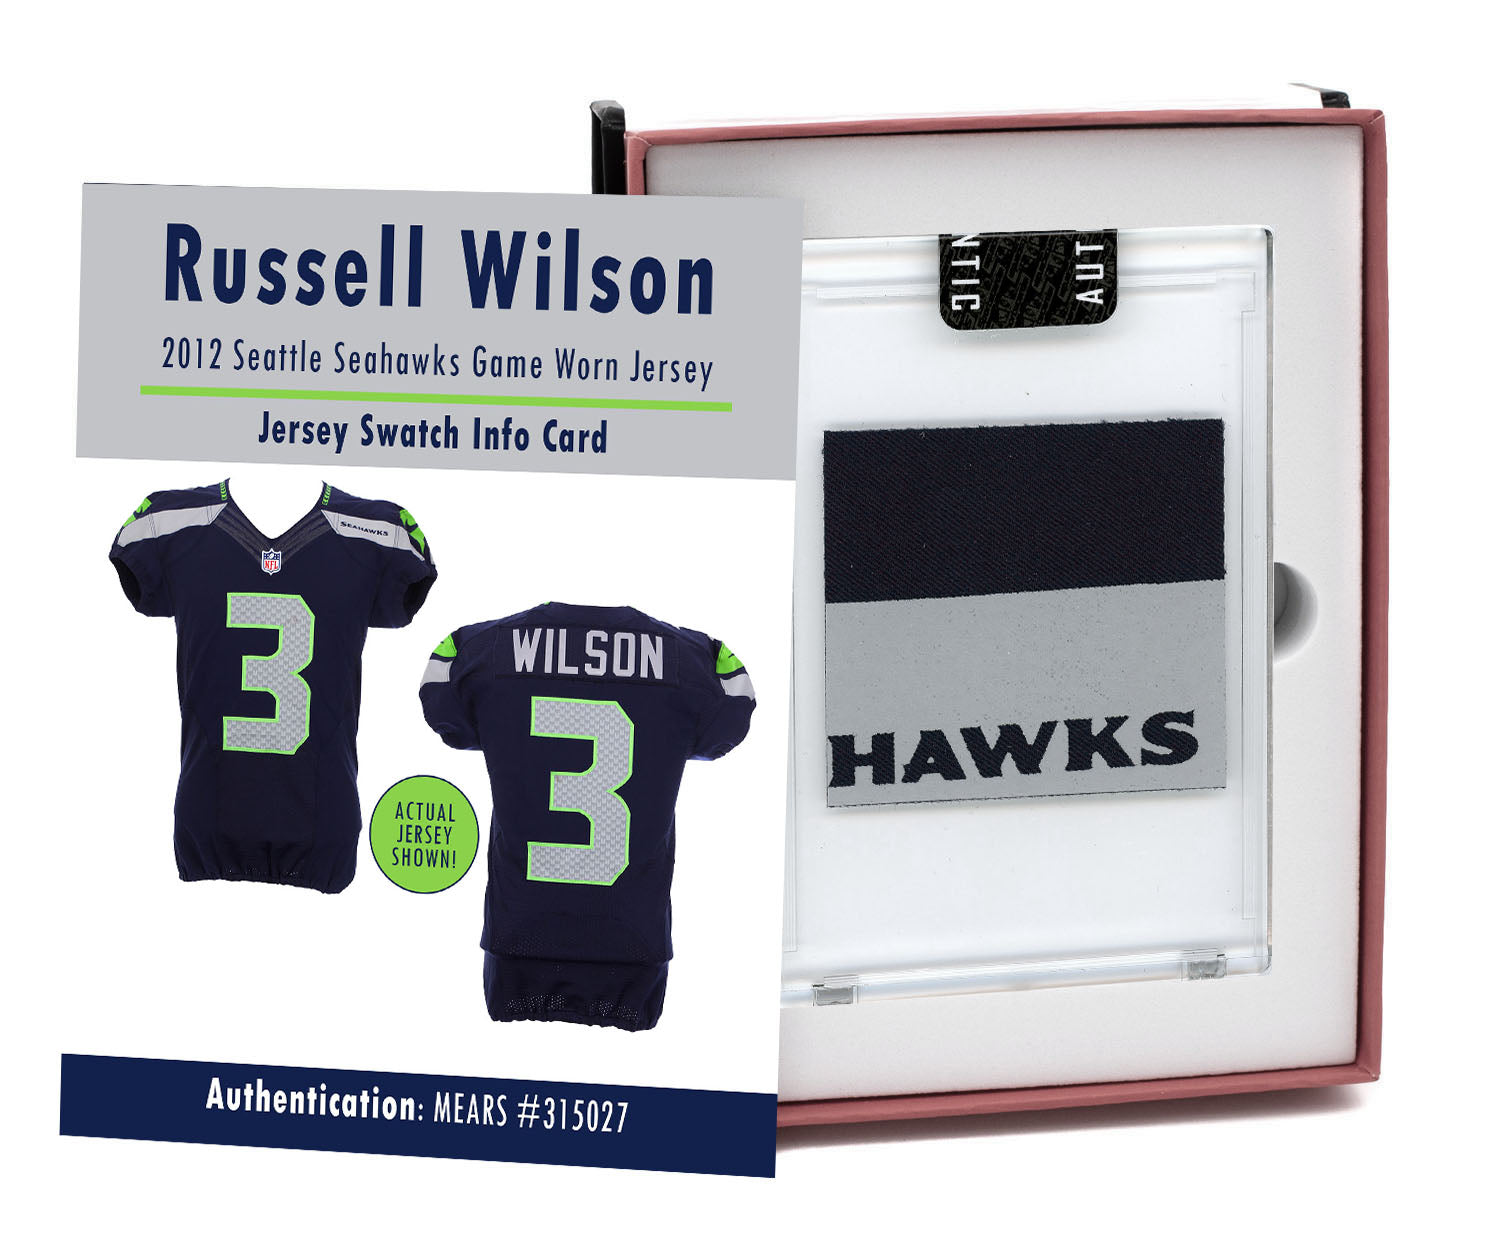 Russell Wilson 2012 Seattle Seahawks Game Worn Jersey Mystery Sealed Swatch Box